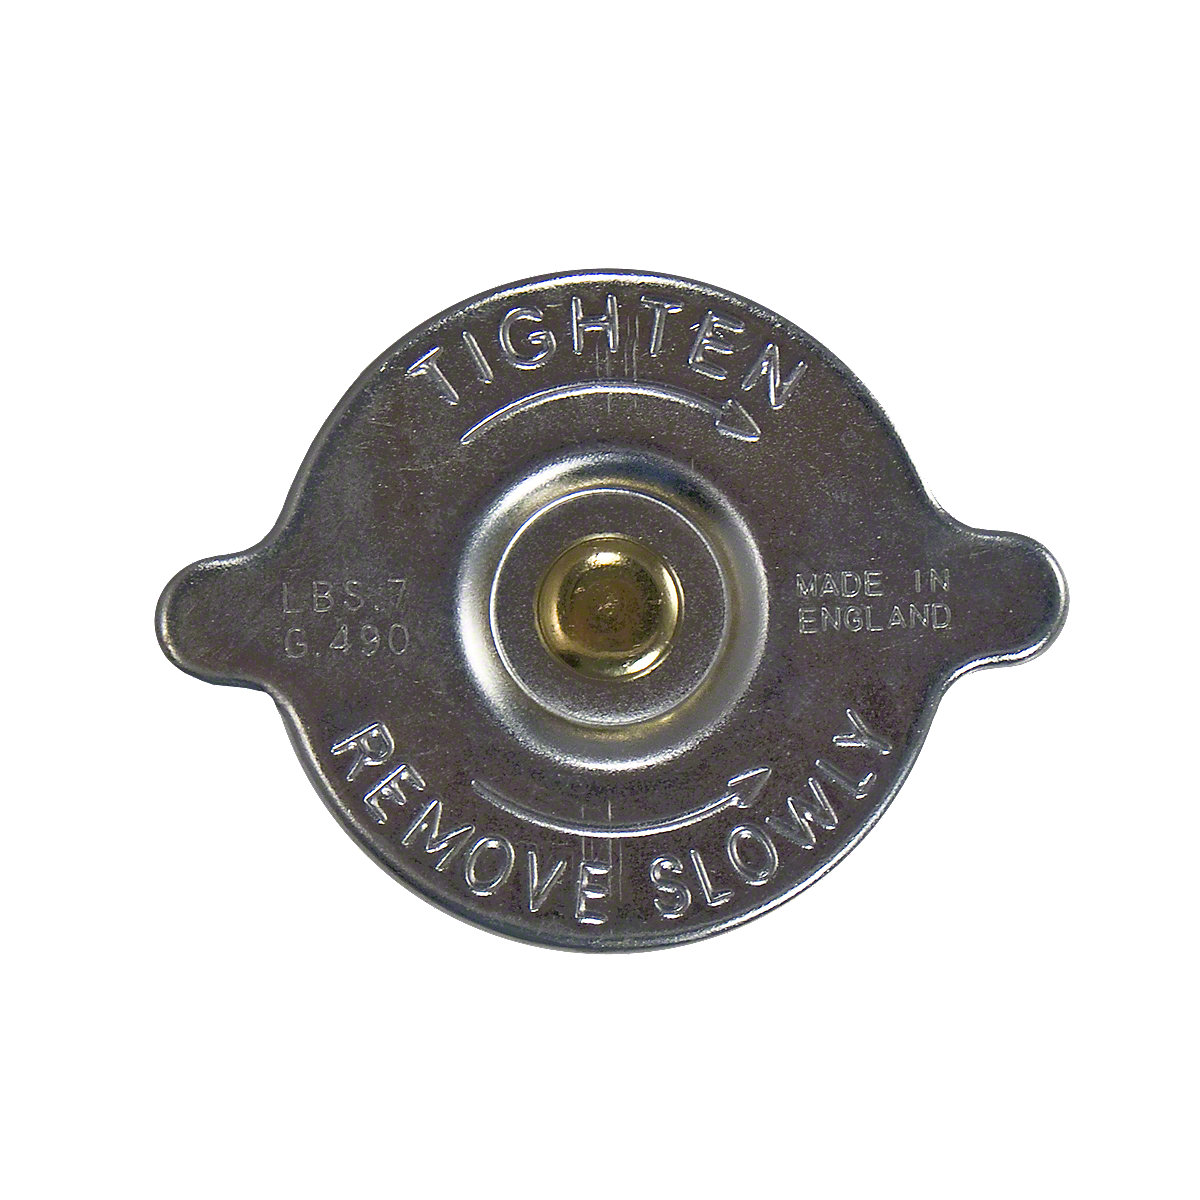 Radiator Cap For Massey Harris: Pacer 16, Pony, 30.